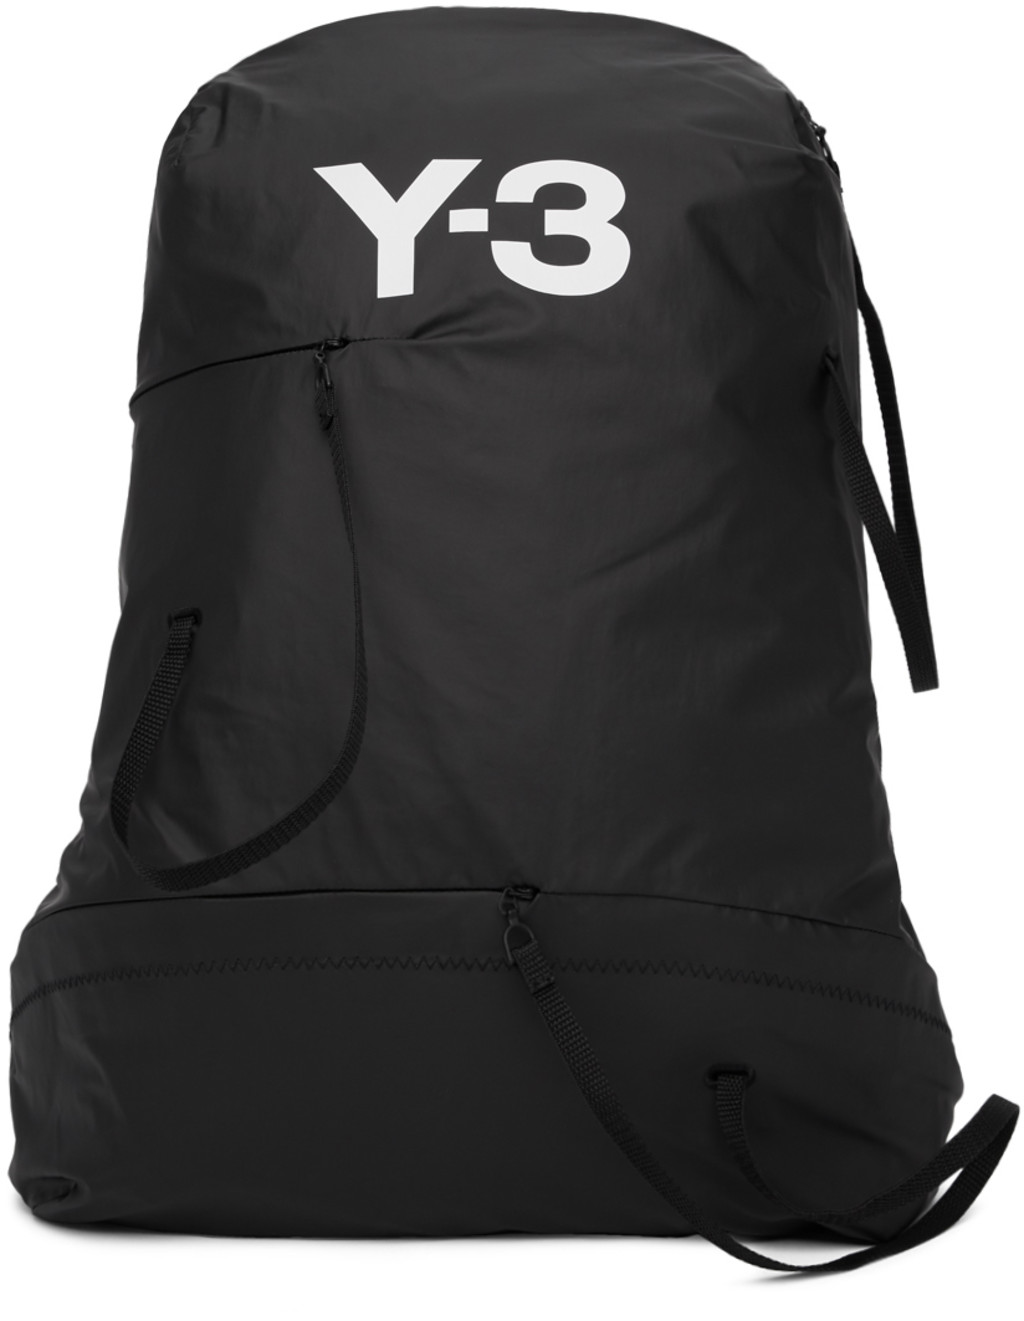 Y-3 for Men SS19 Collection  c5cdb977be2be